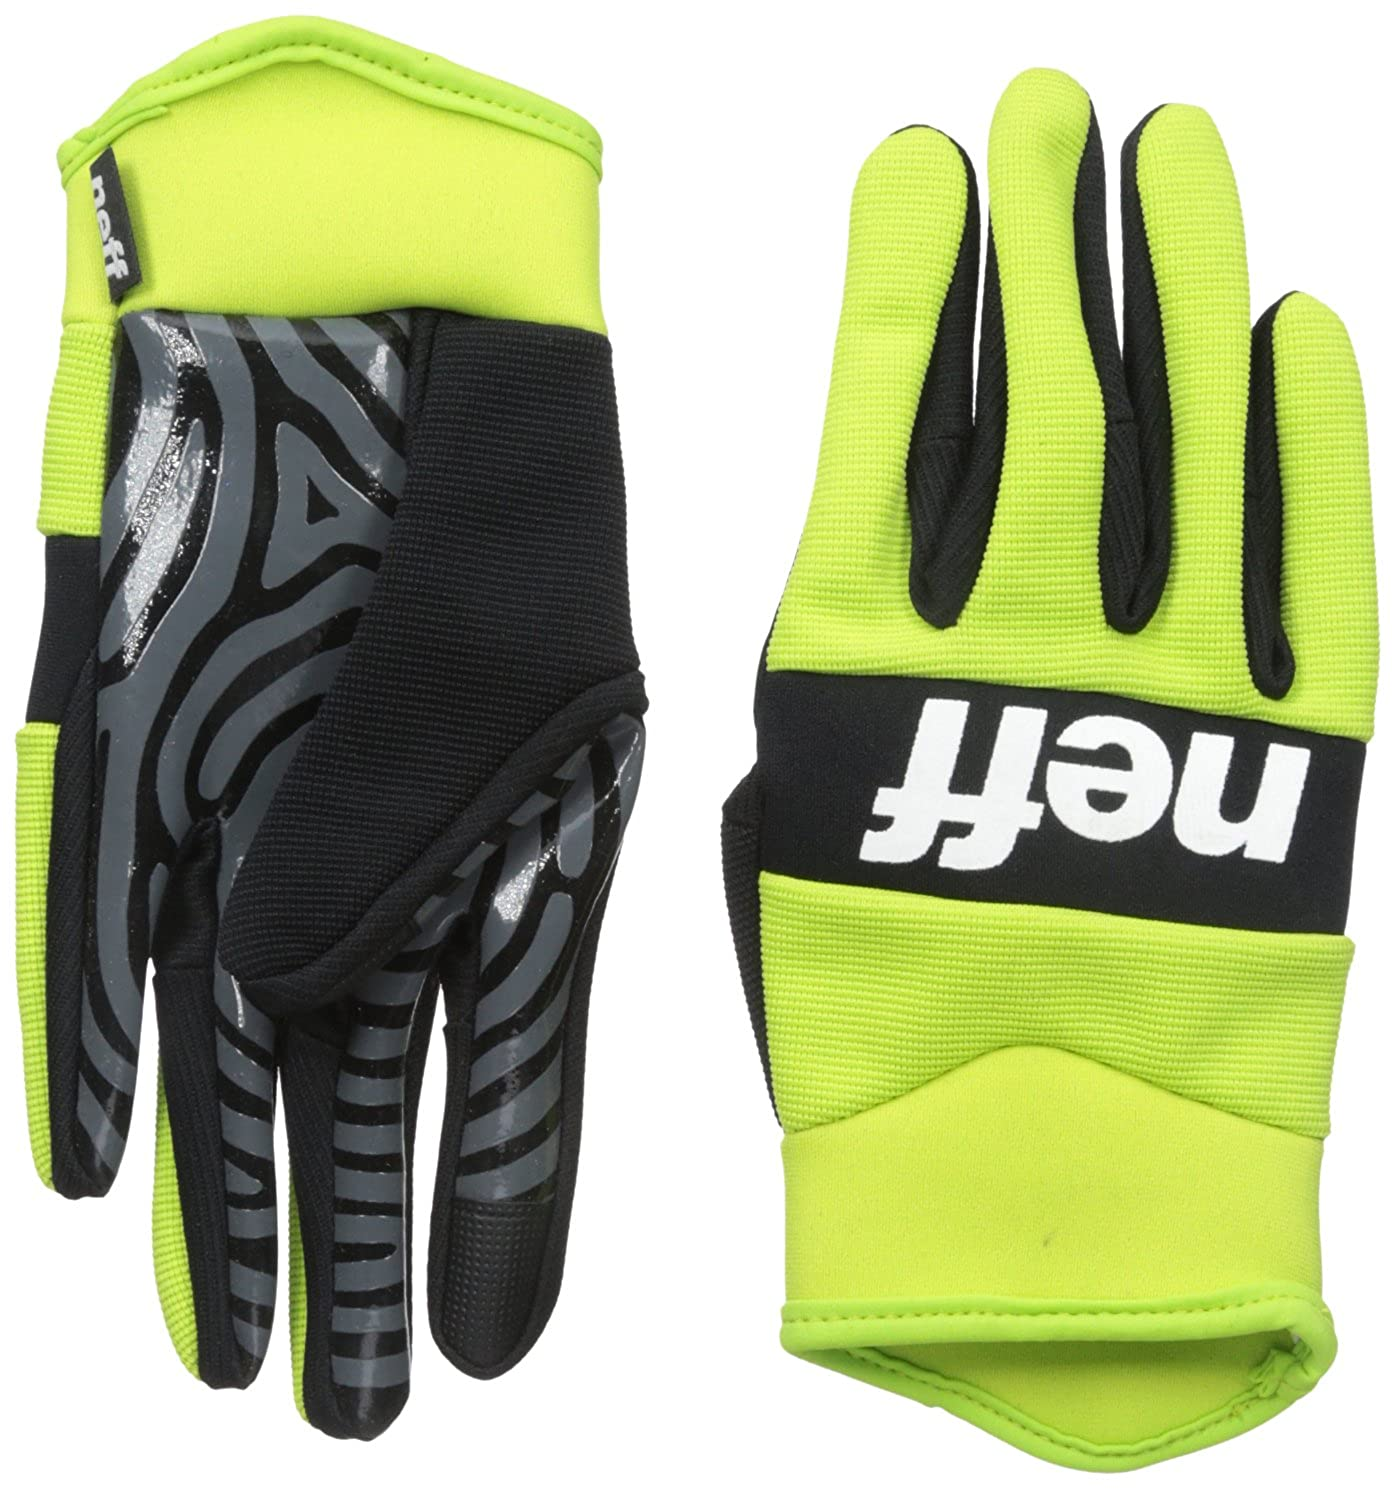 neff Men's Ripper Glove neff Men's Ripper Glove Neff Young Men's 15F72011